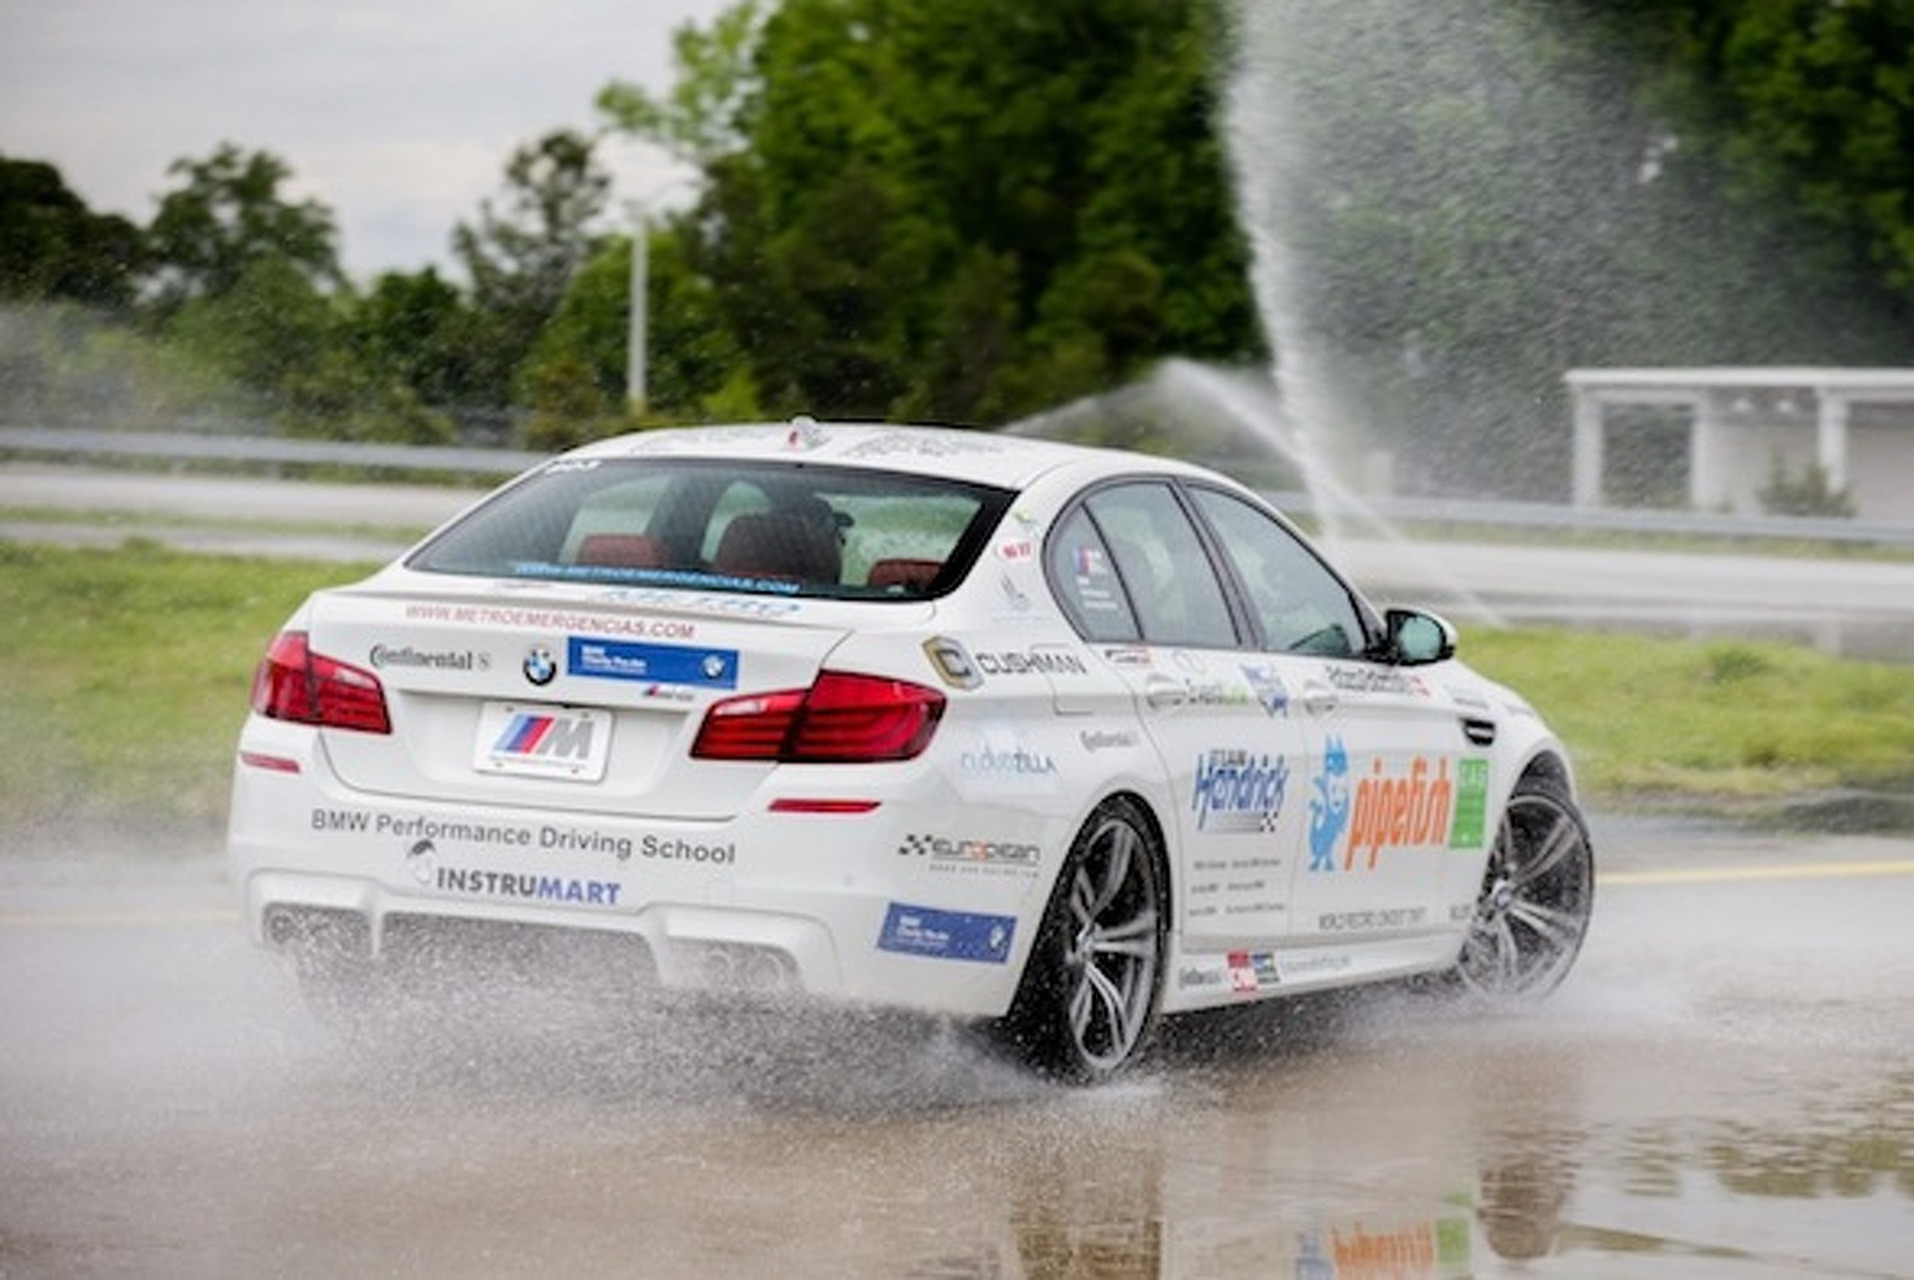 BMW Shatters Drift Record With 51 Mile Skid [w/video]